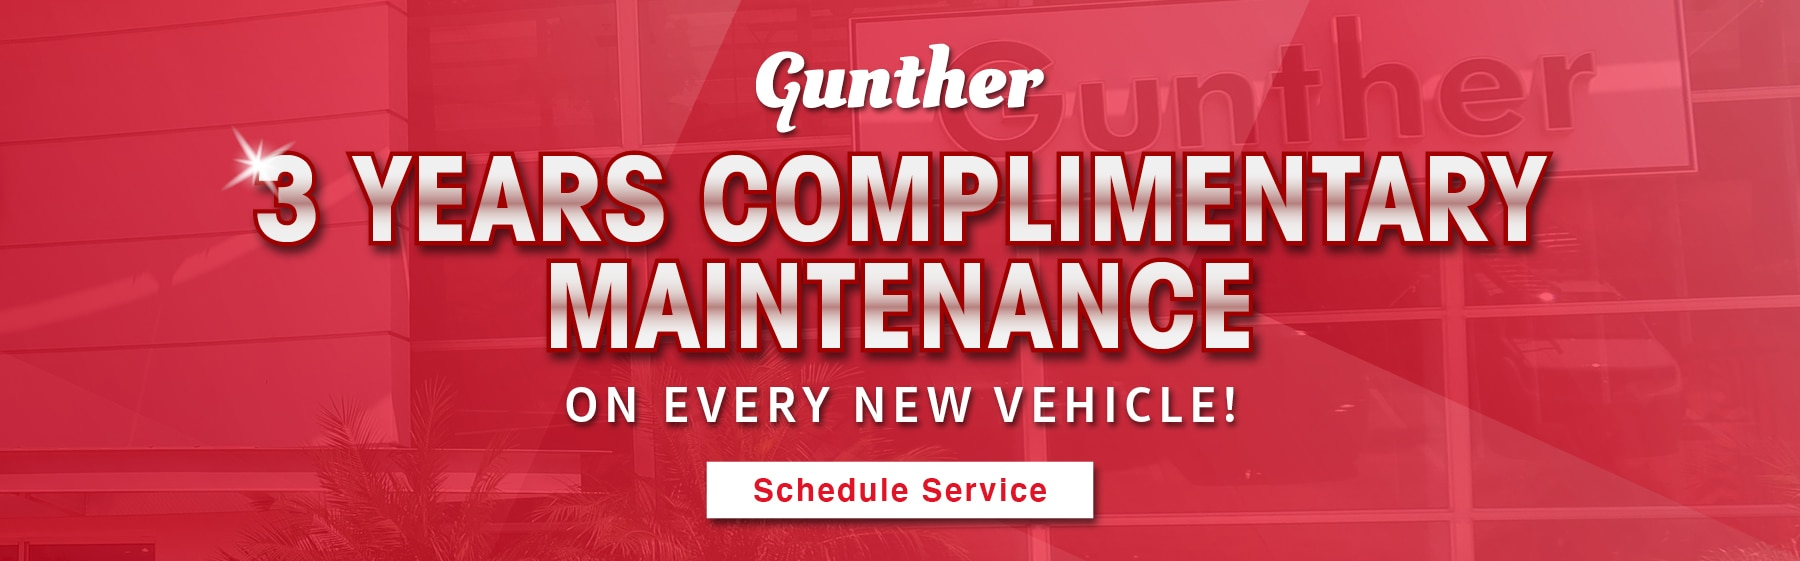 3 years free maintenance on every new vehicle.